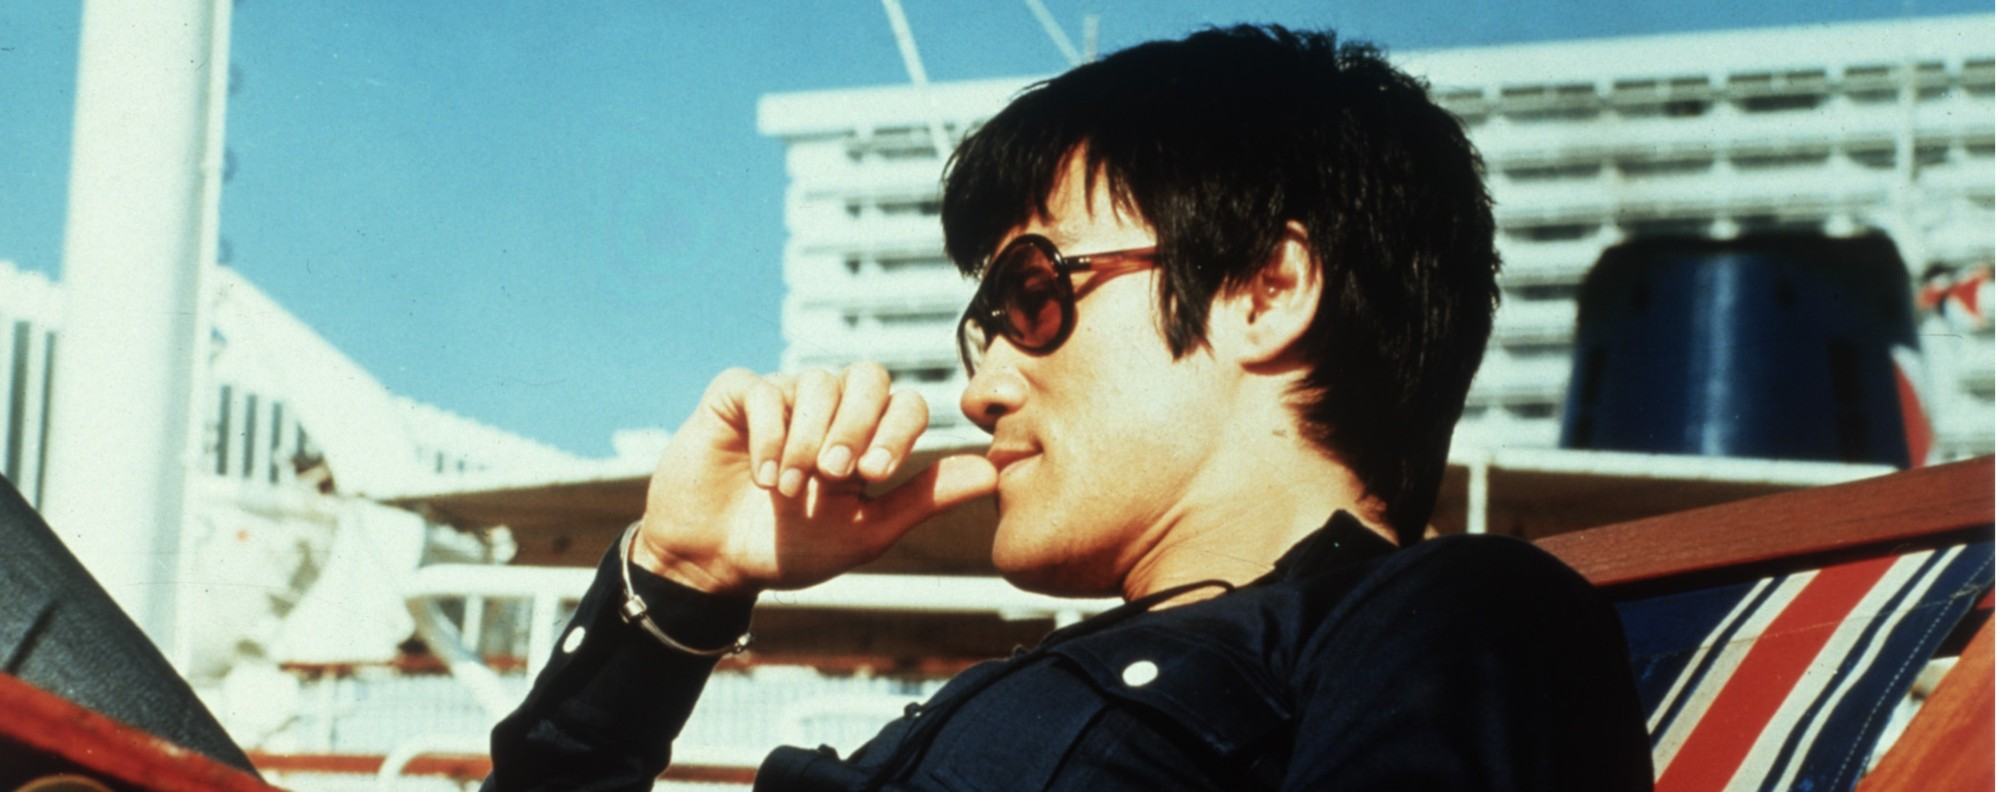 Bruce Lee in Game of Death. Lee died before the film could be finished.